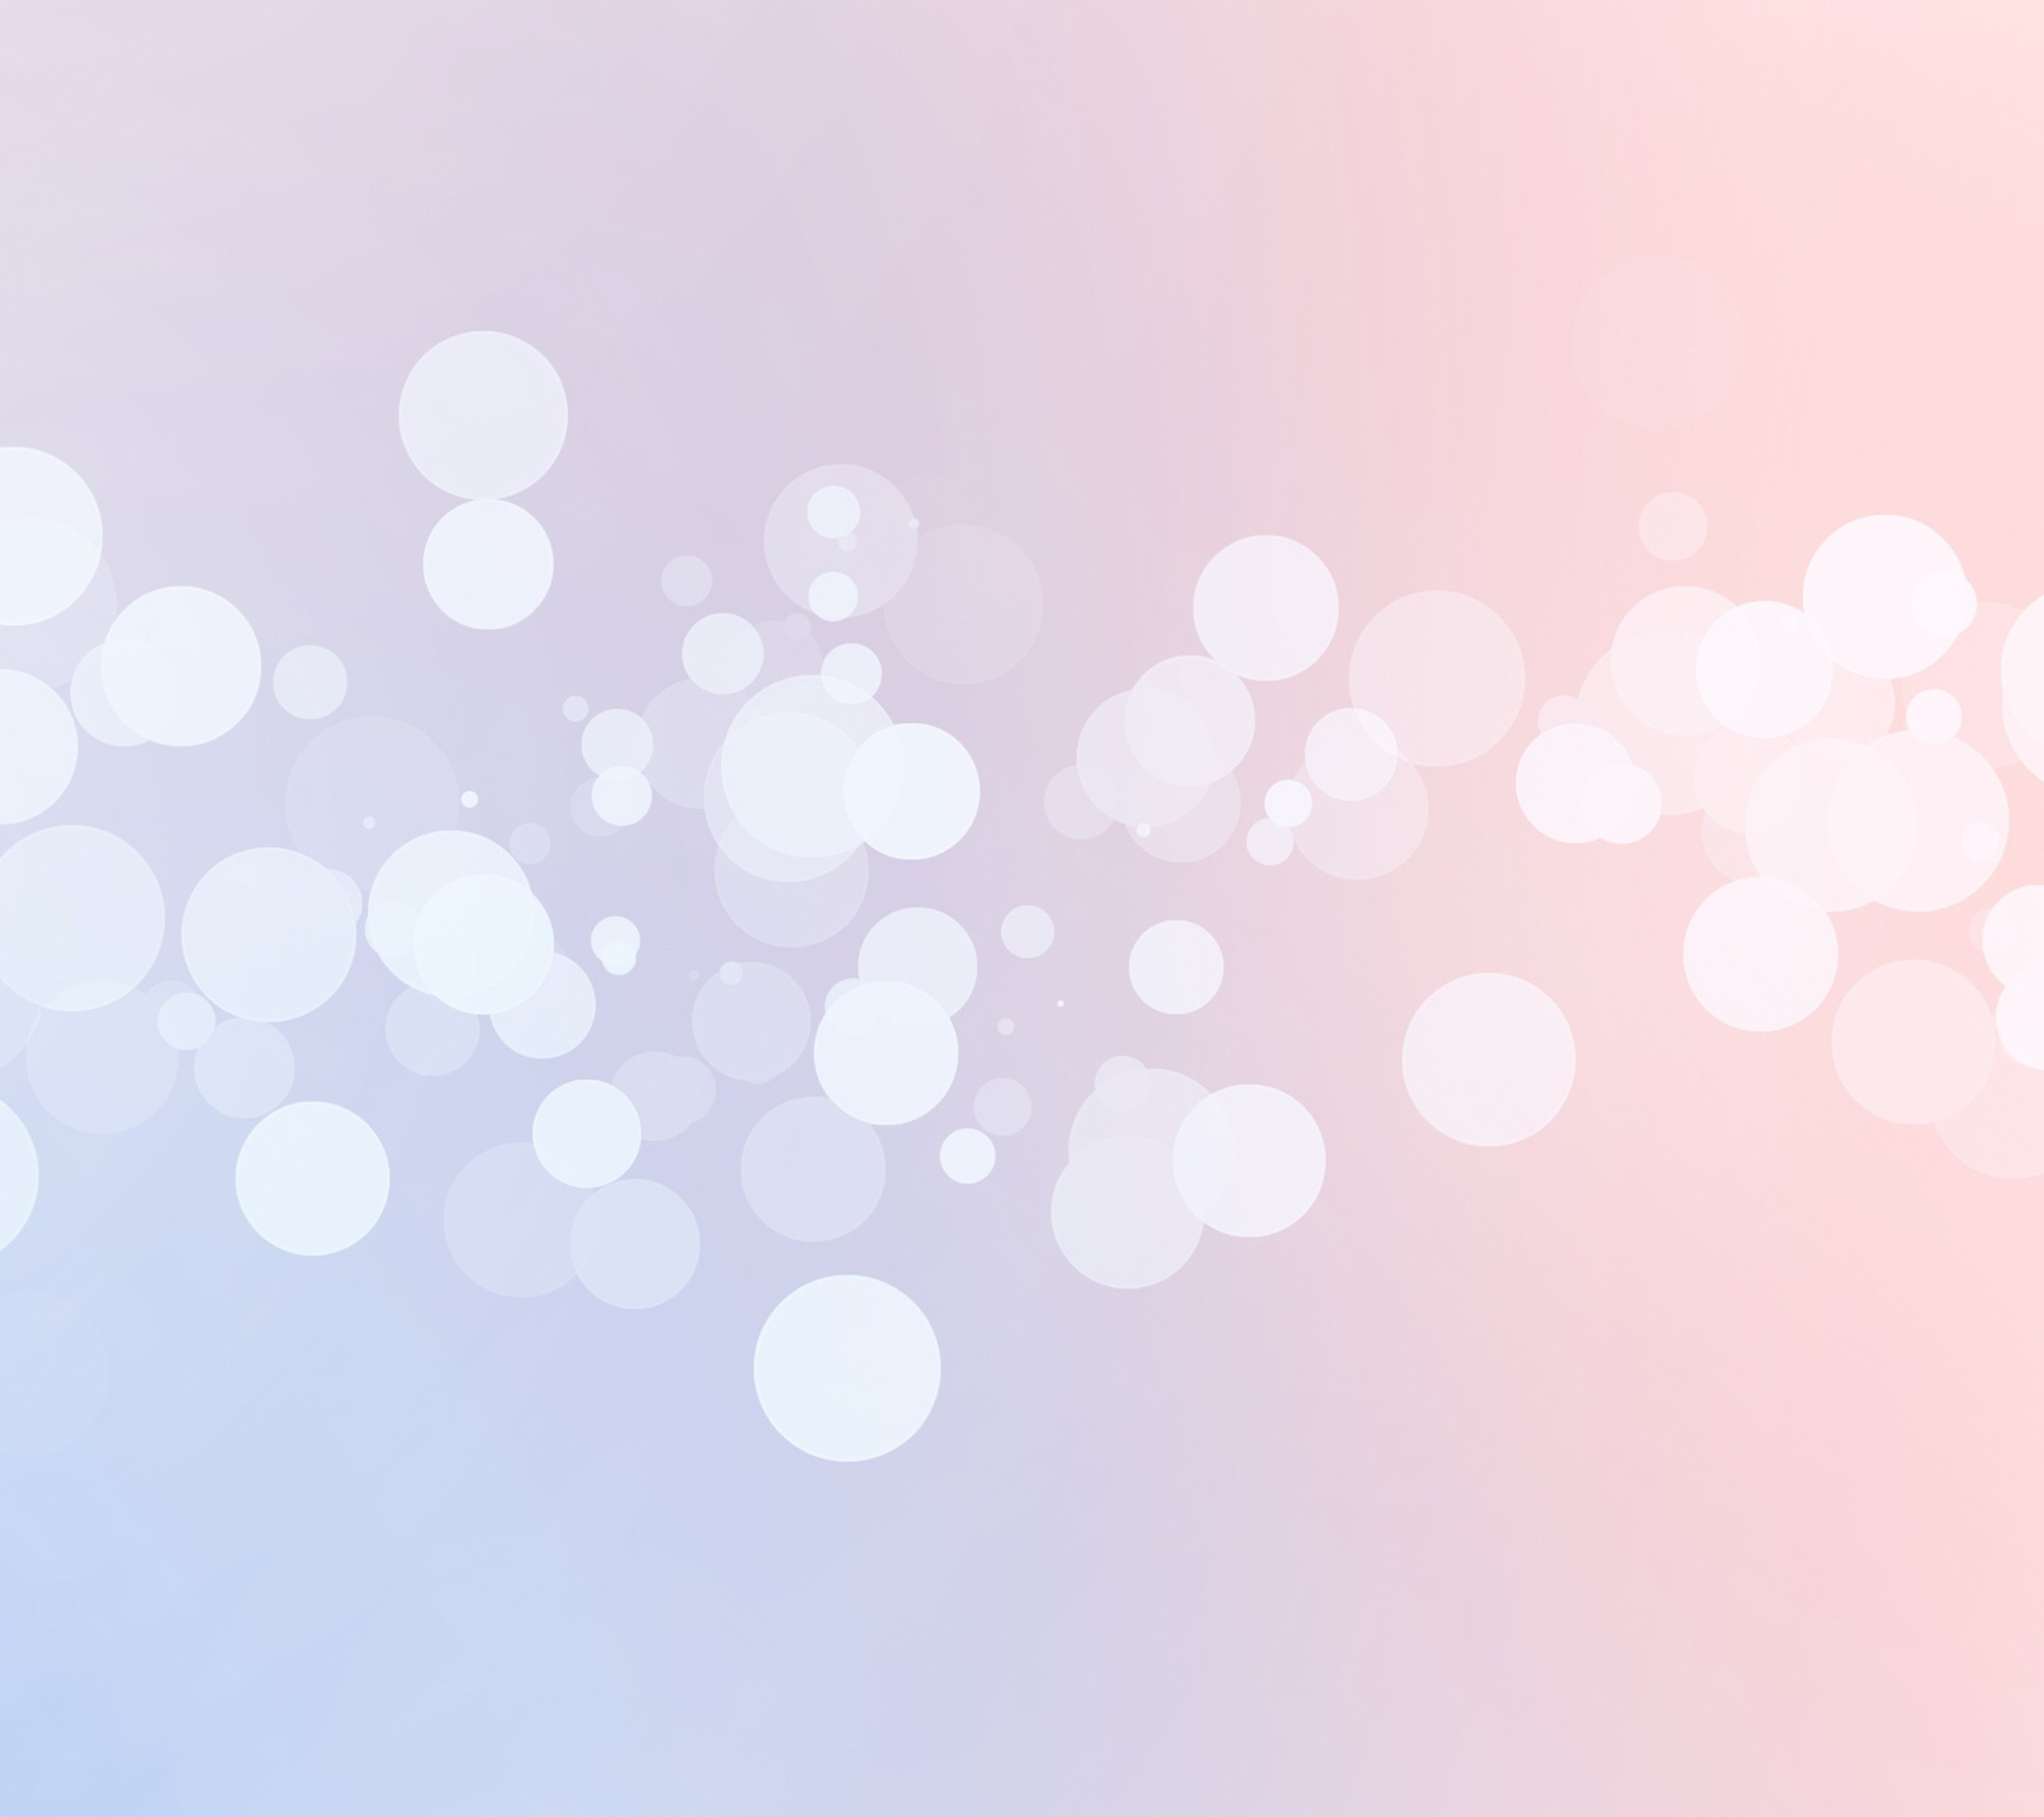 Cute Backgrounds: 22+ Pastel Tumblr Backgrounds ·① Download Free HD